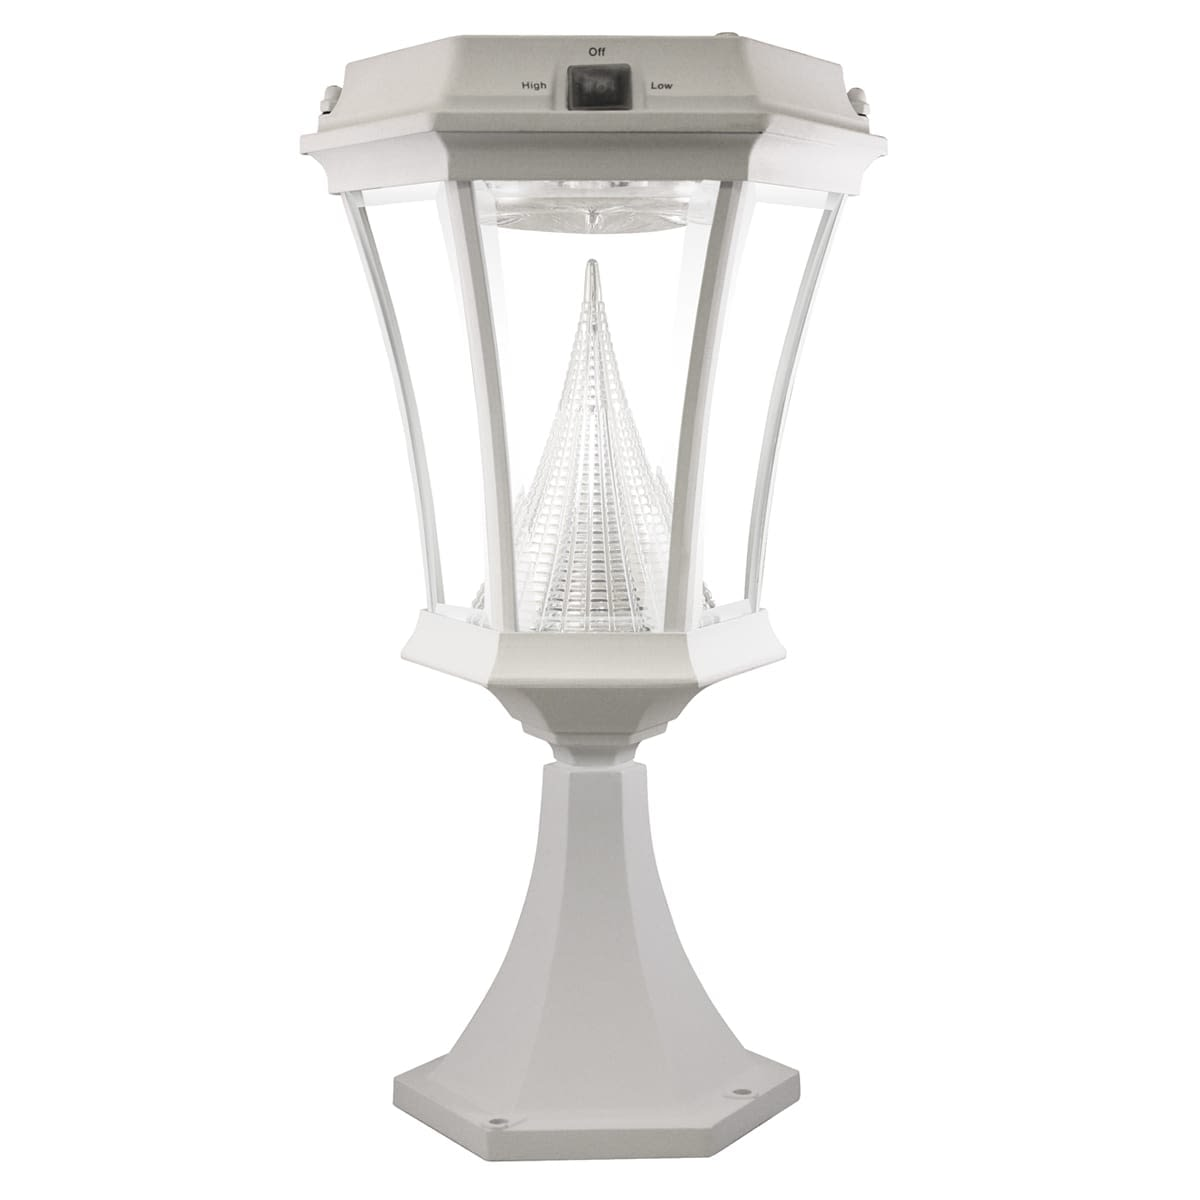 Victorian-Solar-Lamp-Post-by-Gama-Sonic-GS-94P-White